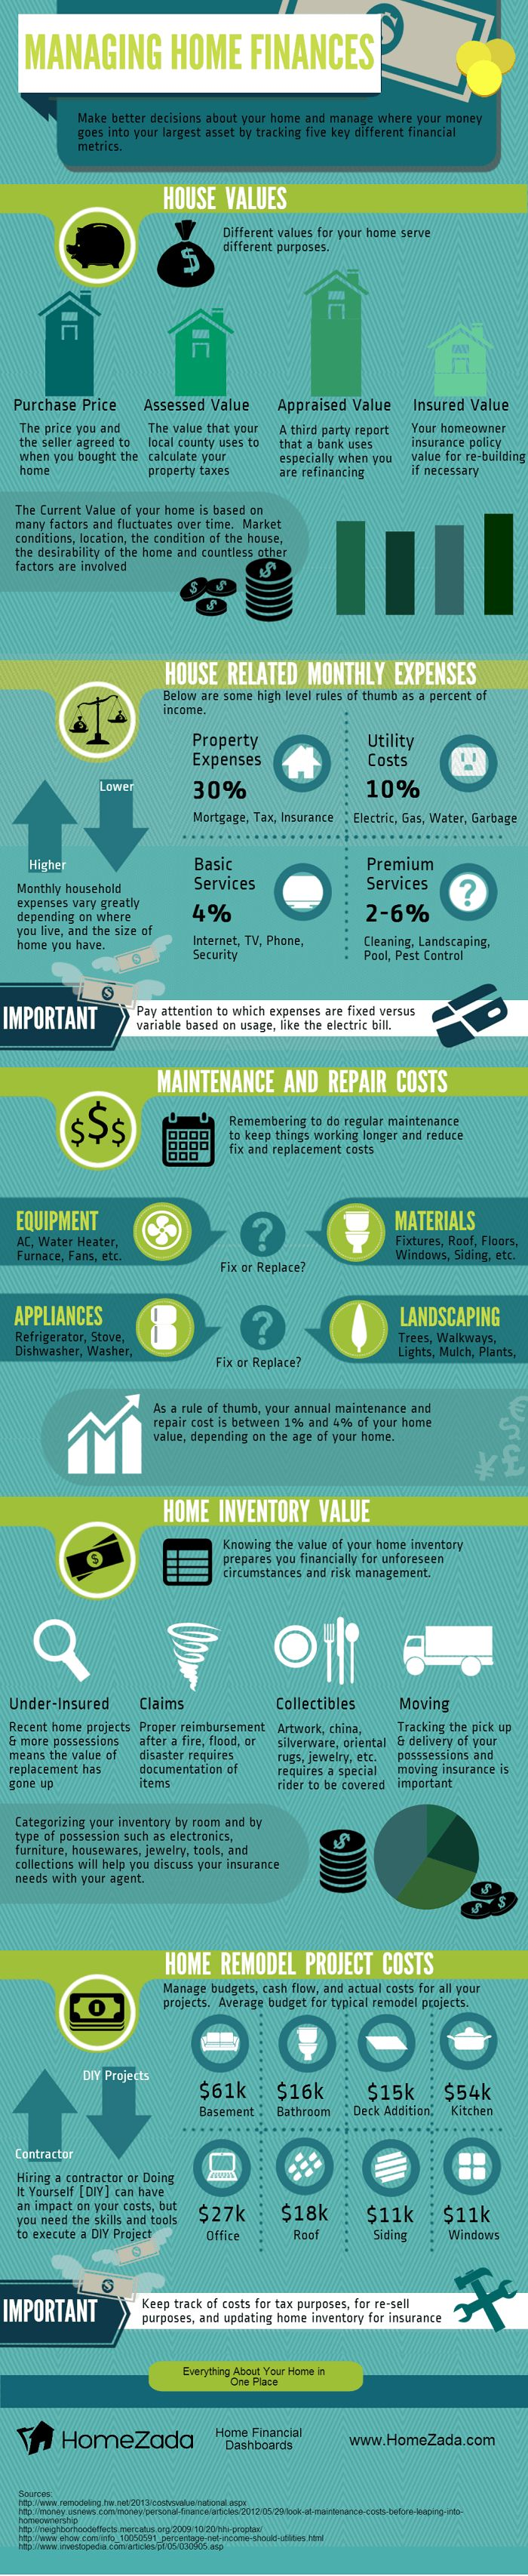 How to Manage Home Finances [Helpful Infographic]